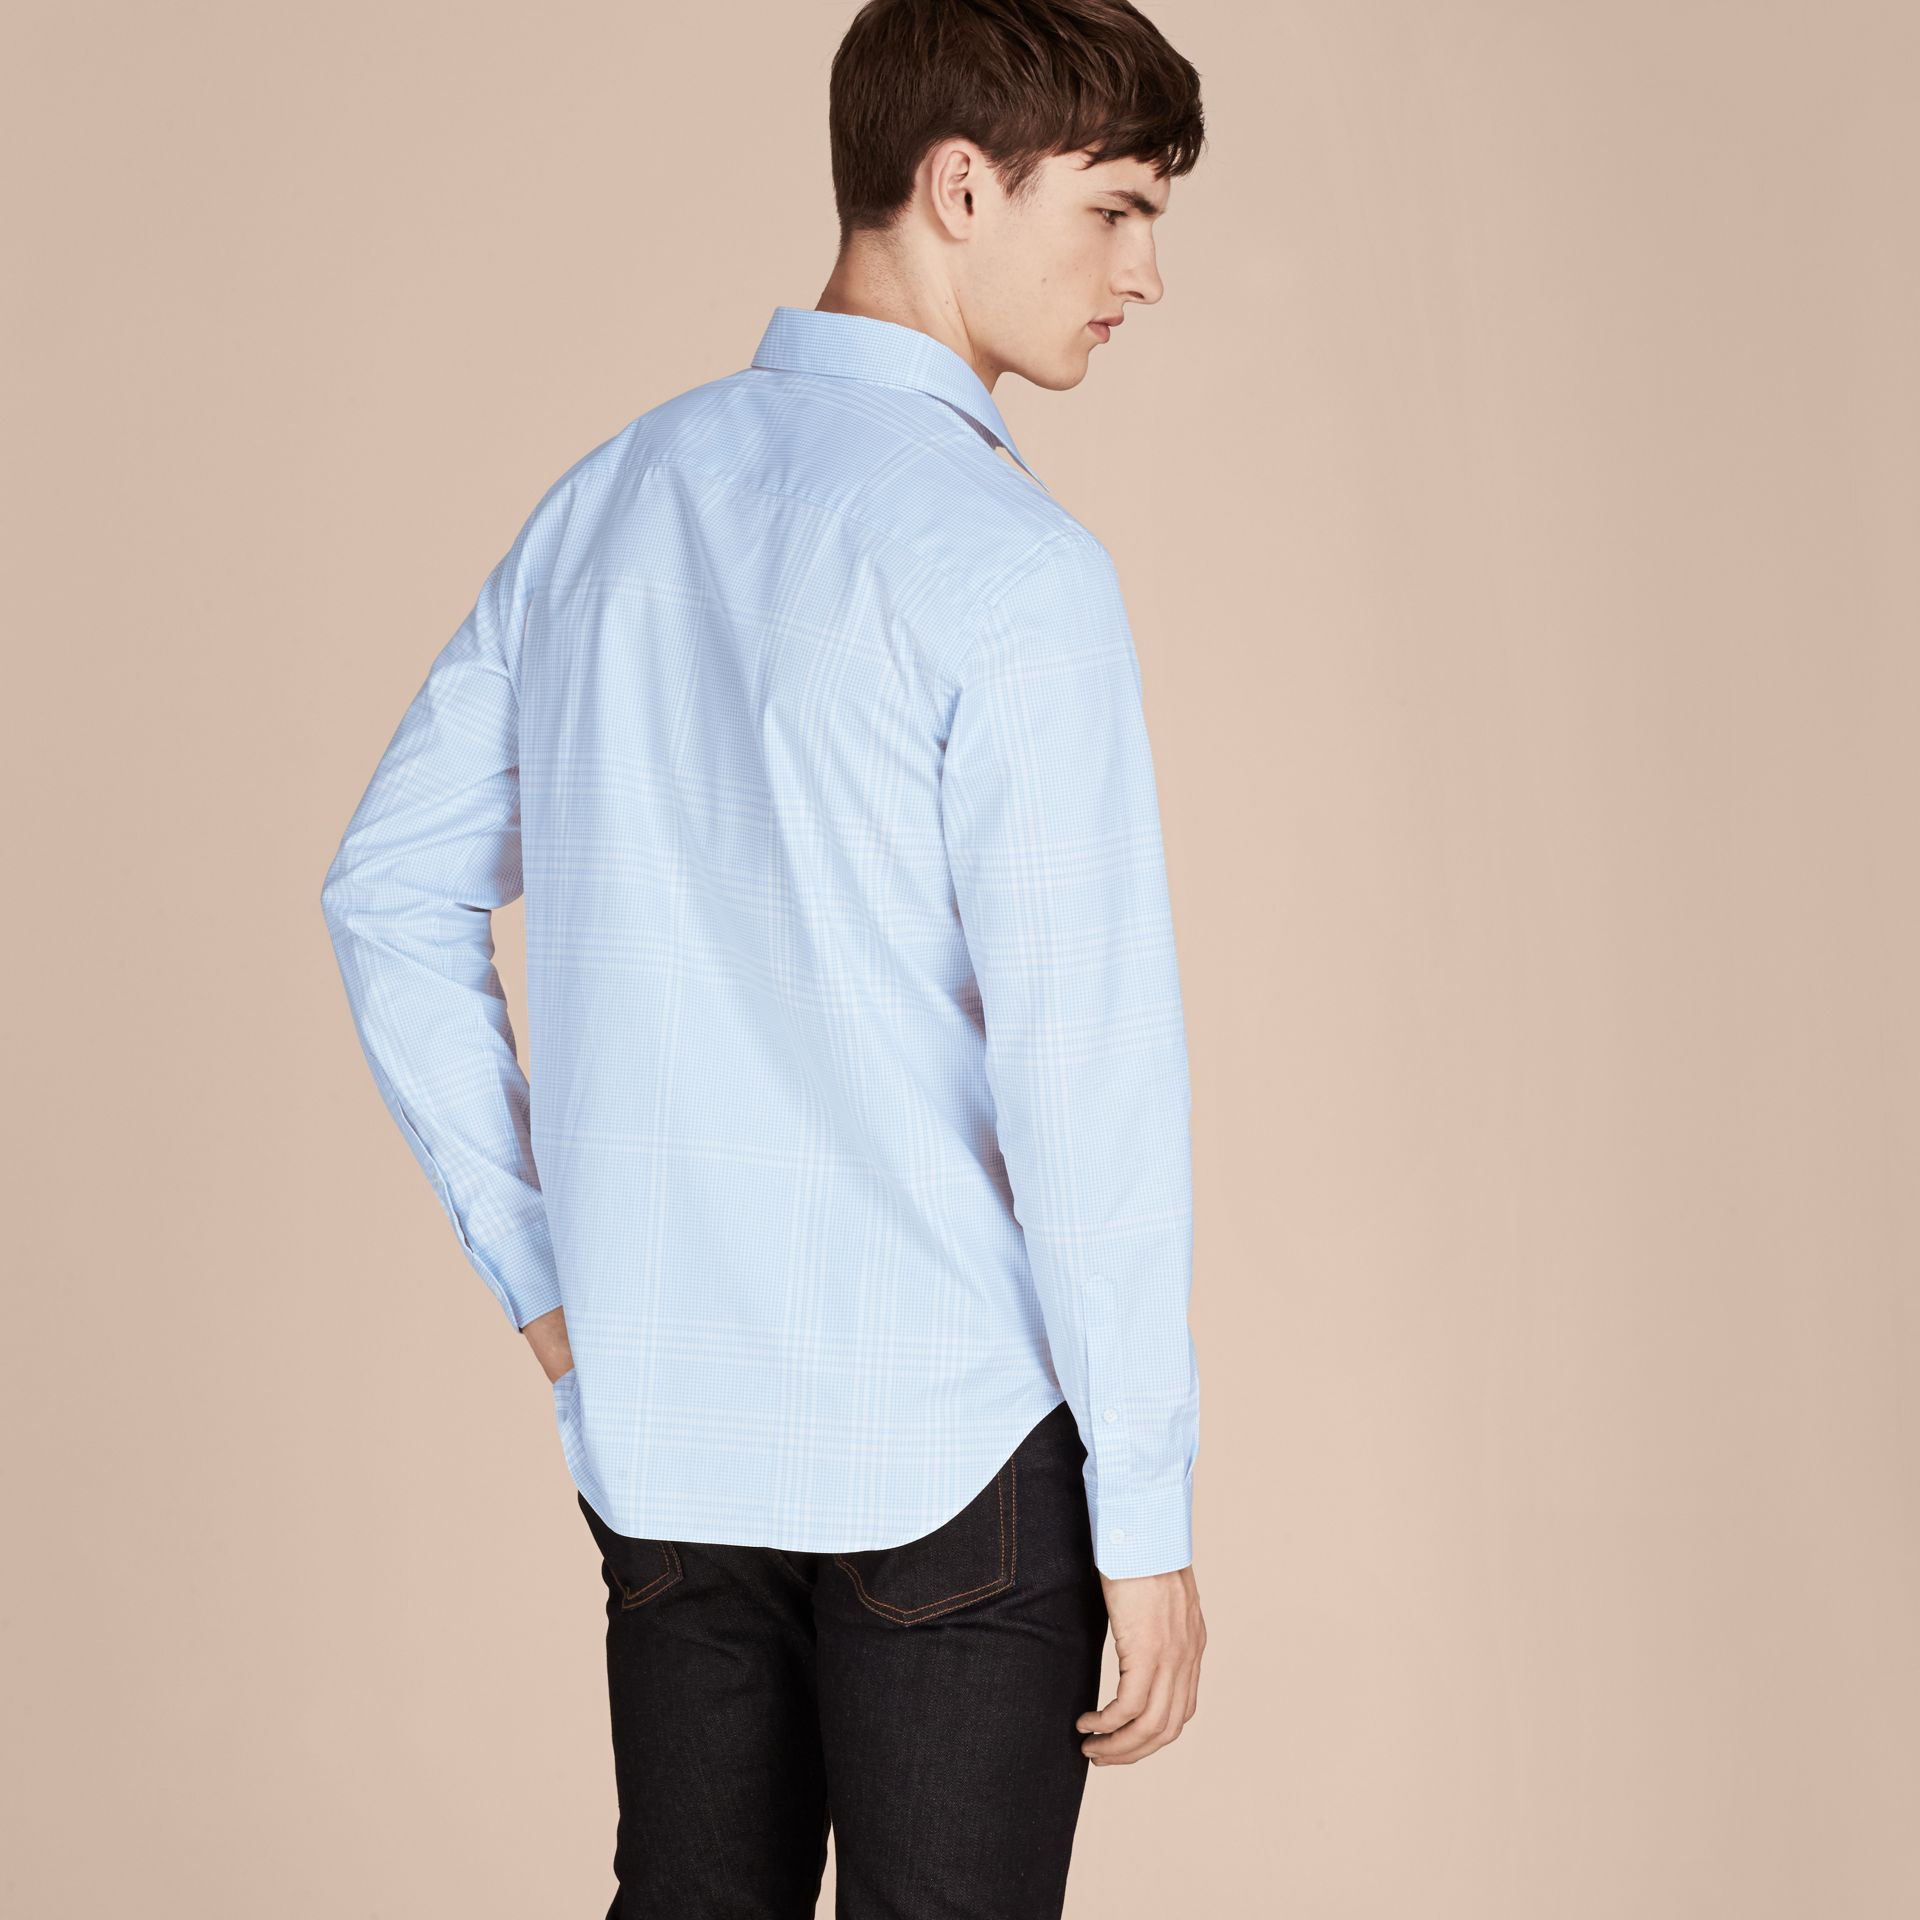 City blue Check Cotton Shirt City Blue - gallery image 3